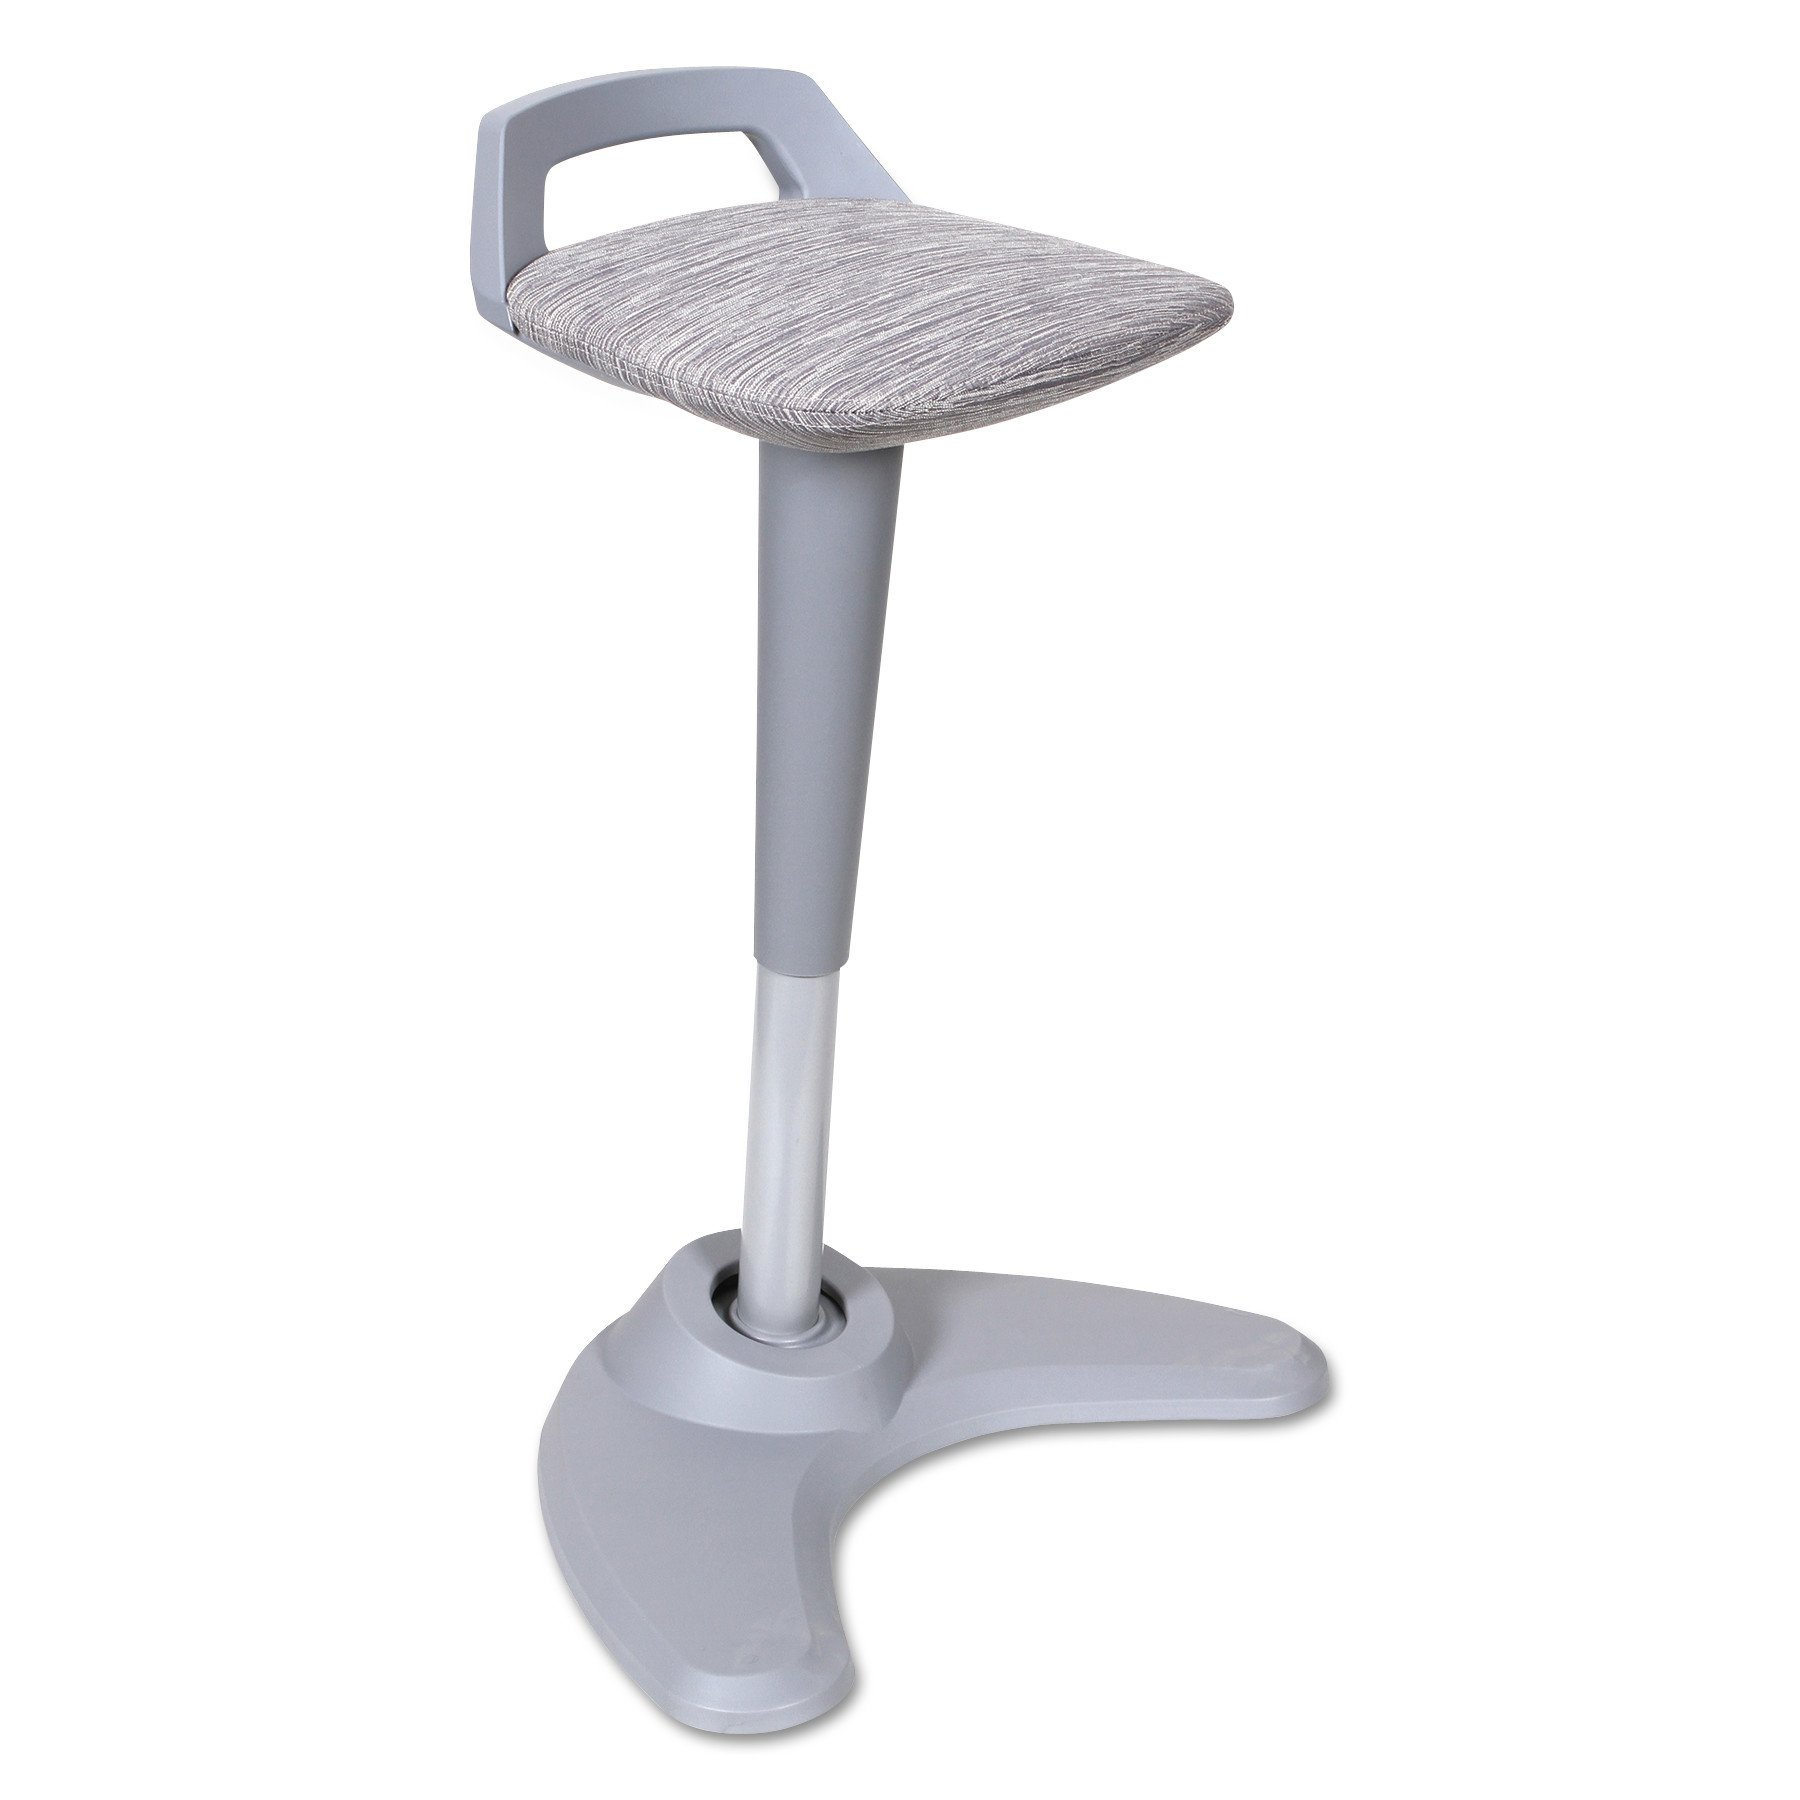 Alera ALEAE36PSGR AdaptivErgo Sit to Stand Perch Stool, Gray with Silver Base